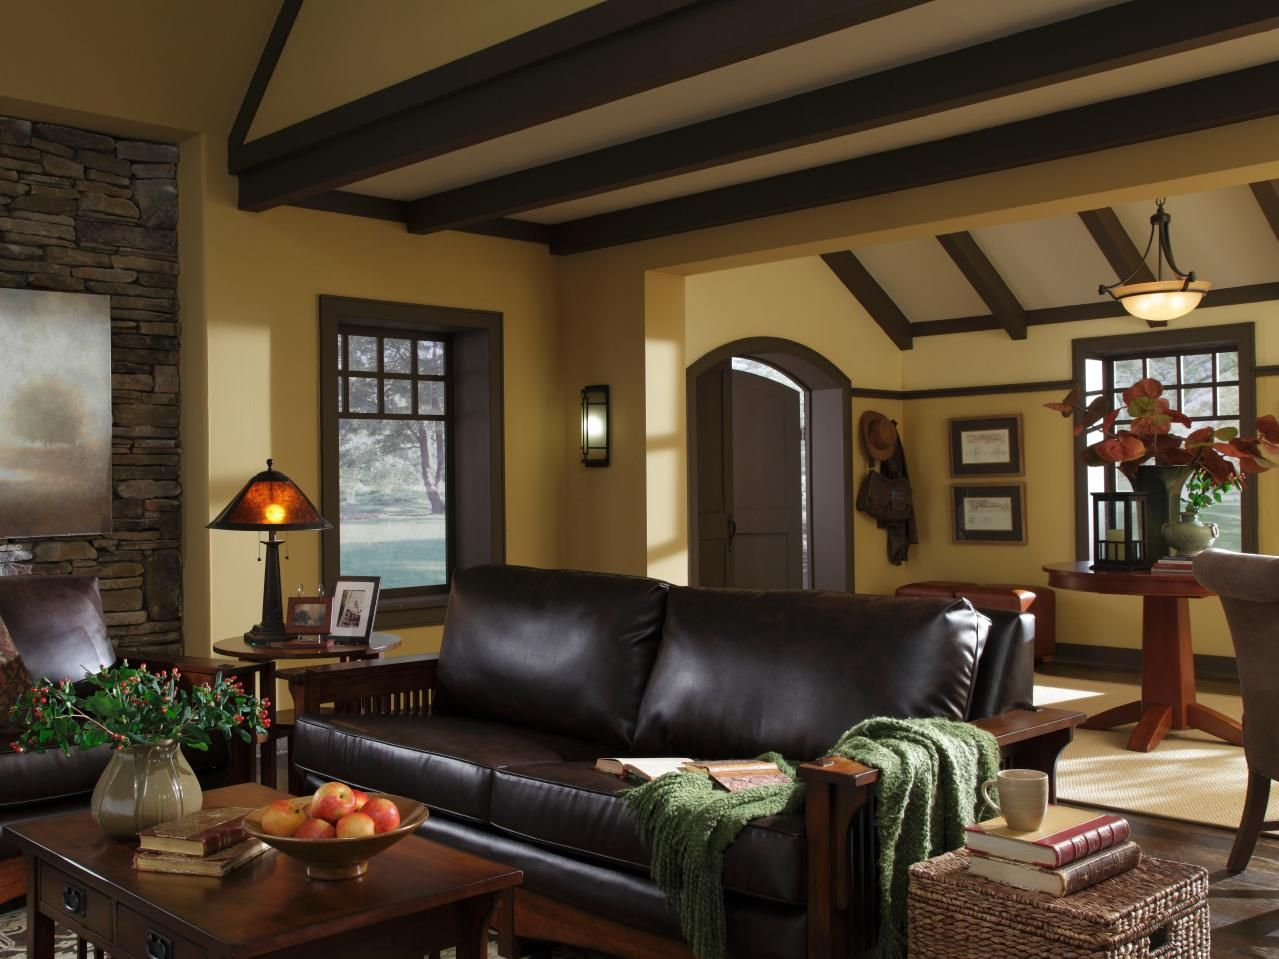 Top 7 Interior Design Styles | Living Room / Dining Room ...